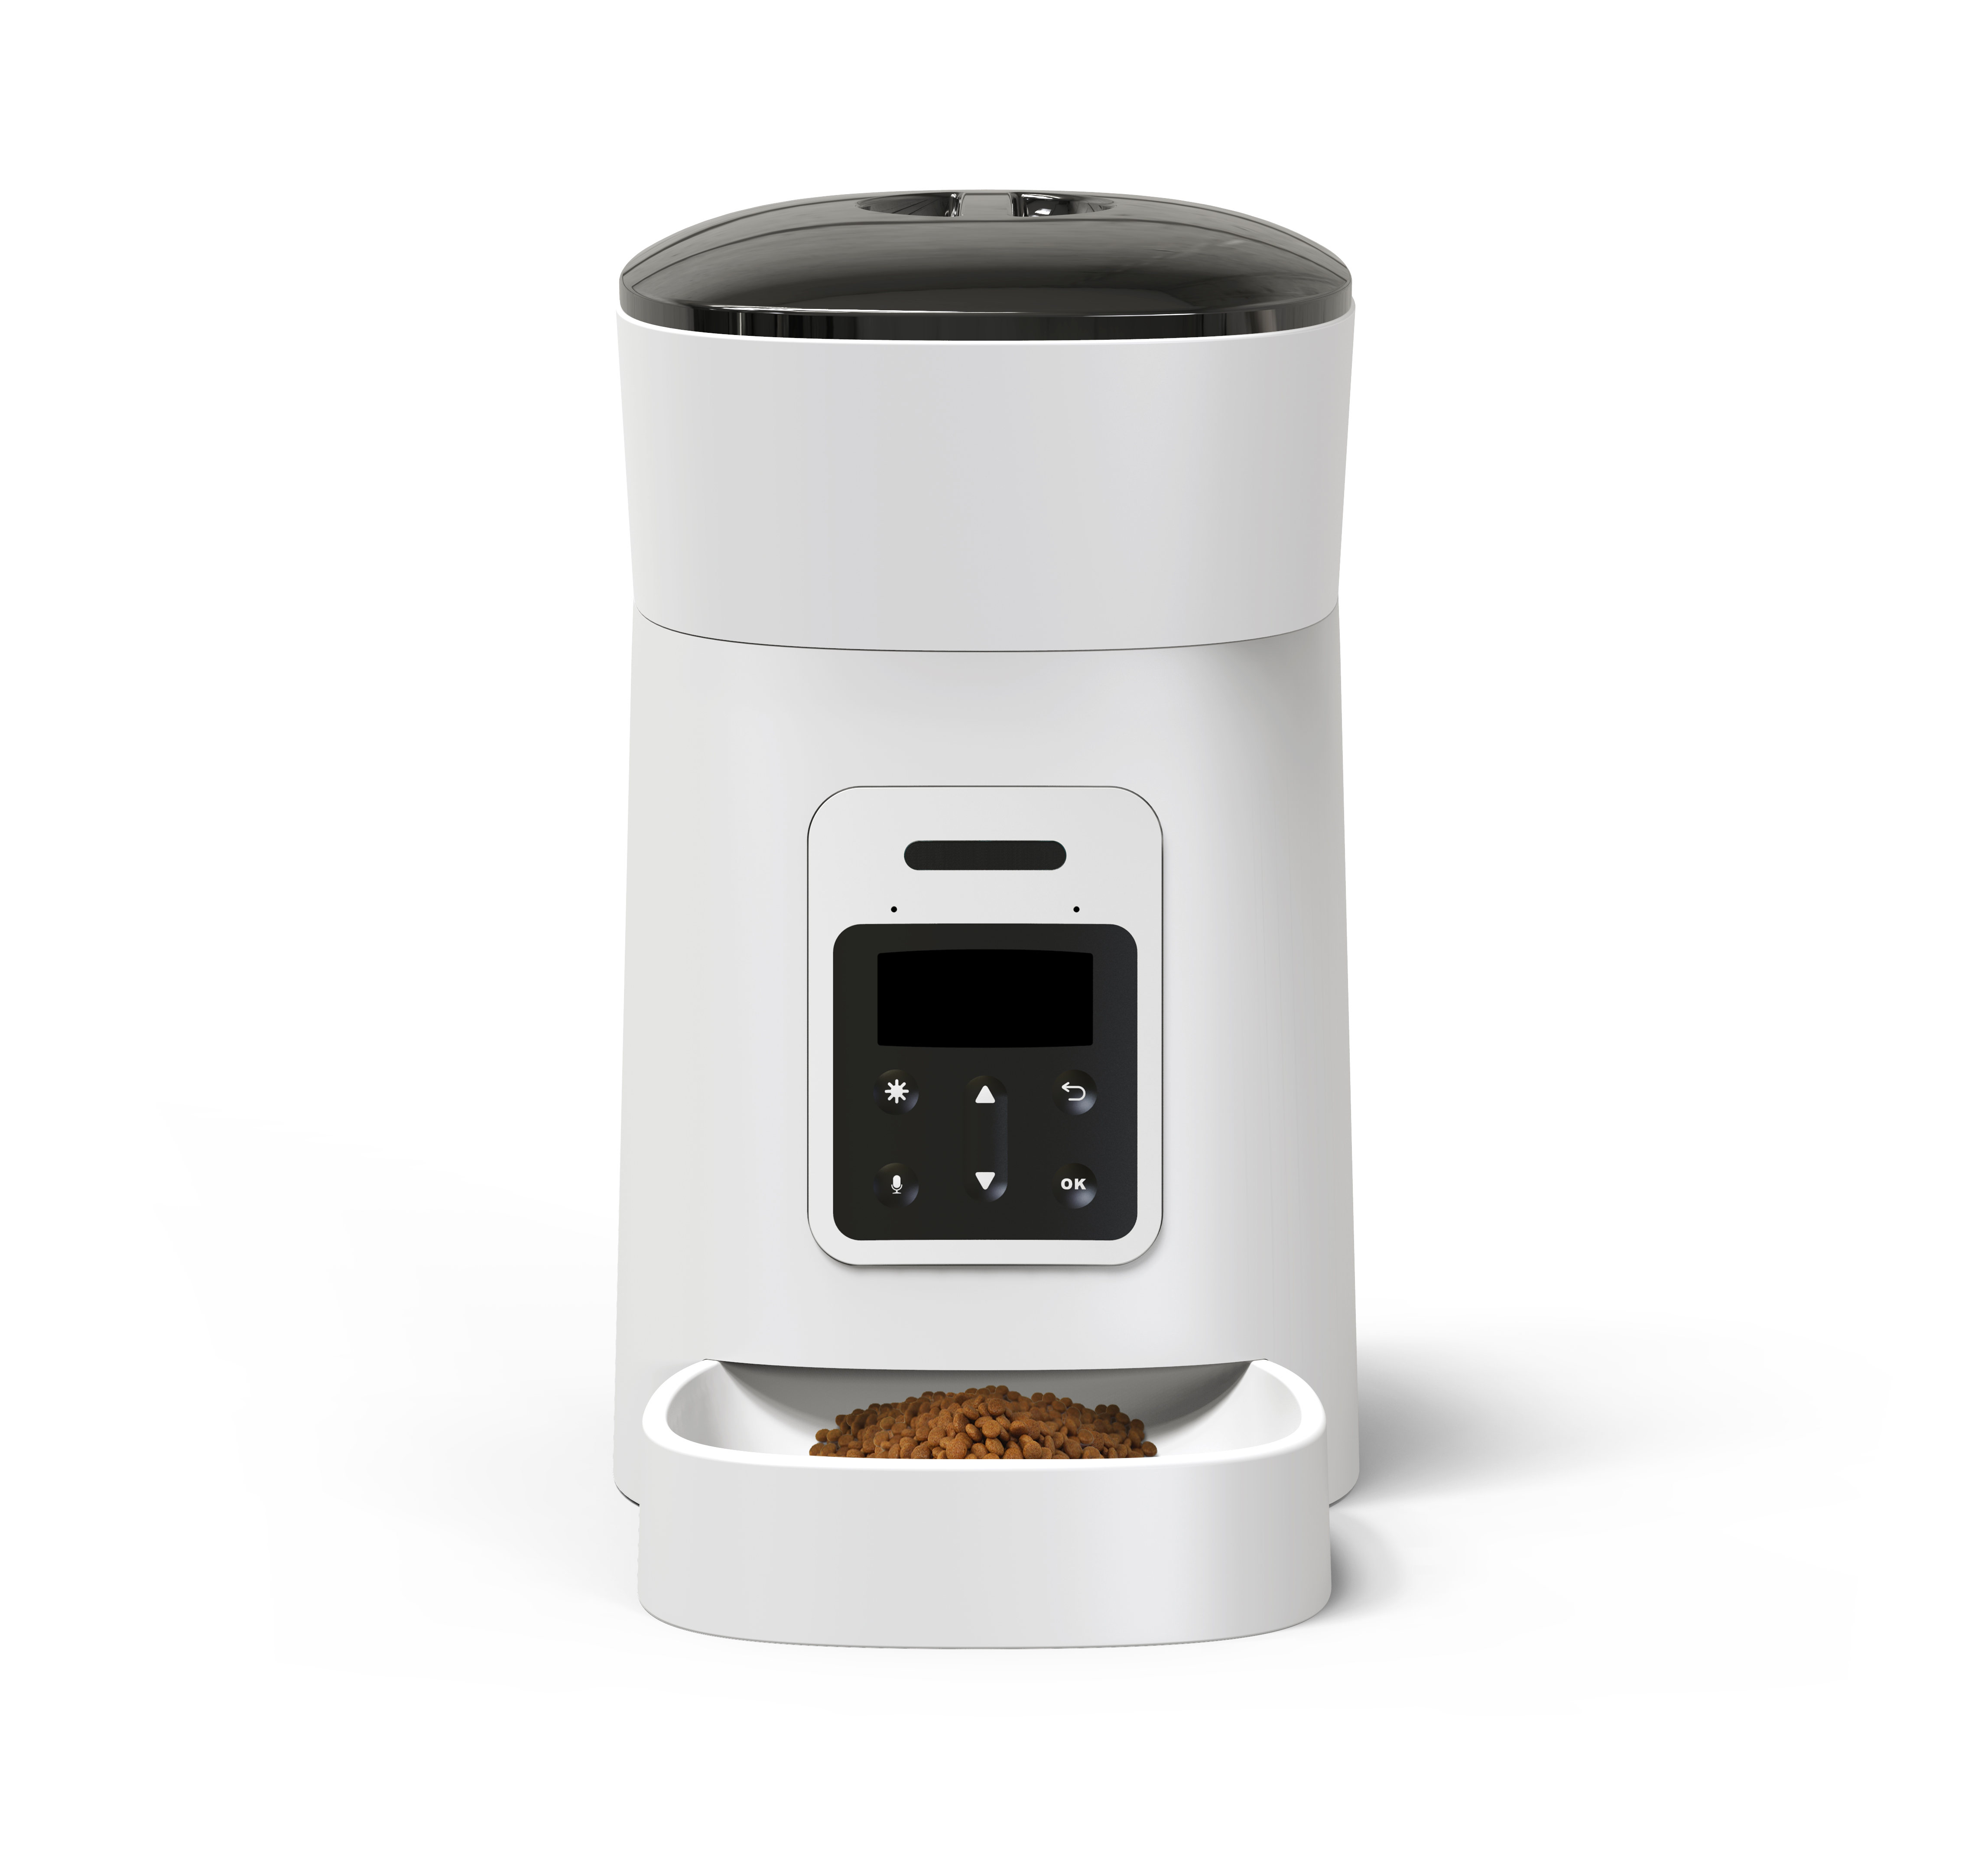 Newest 4.3 <strong>L</strong> Automatic Pet Bowls Feeder pet auto feeder with Timer Programmable